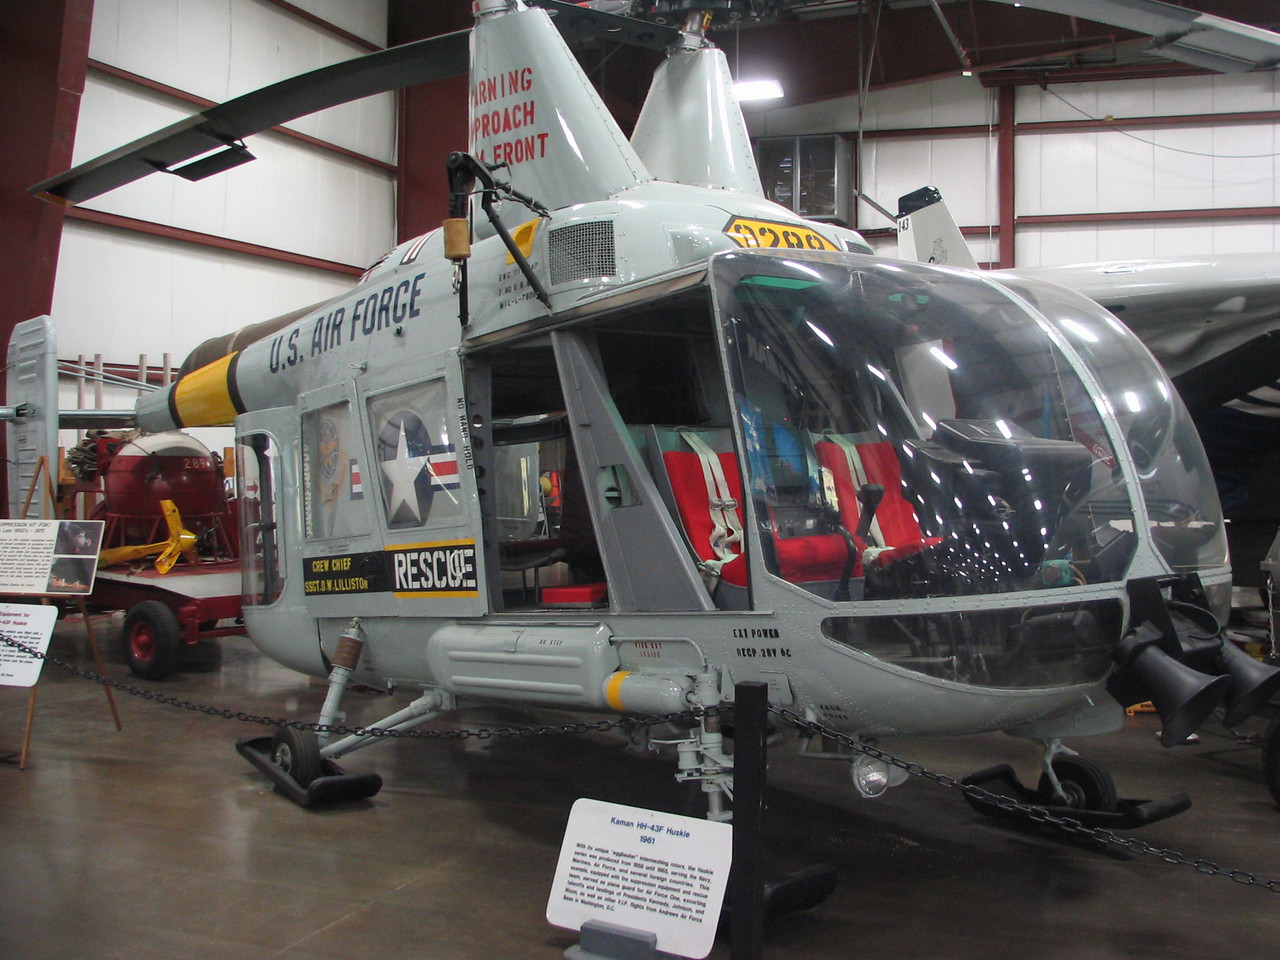 Kaman HH-43F Huskie. This helicopter uses two intermeshing rotors which was a Kaman feature. This particular helicopter was used as an escort to Air Force One flights for Presidents Kennedy, Johnson, and Nixon